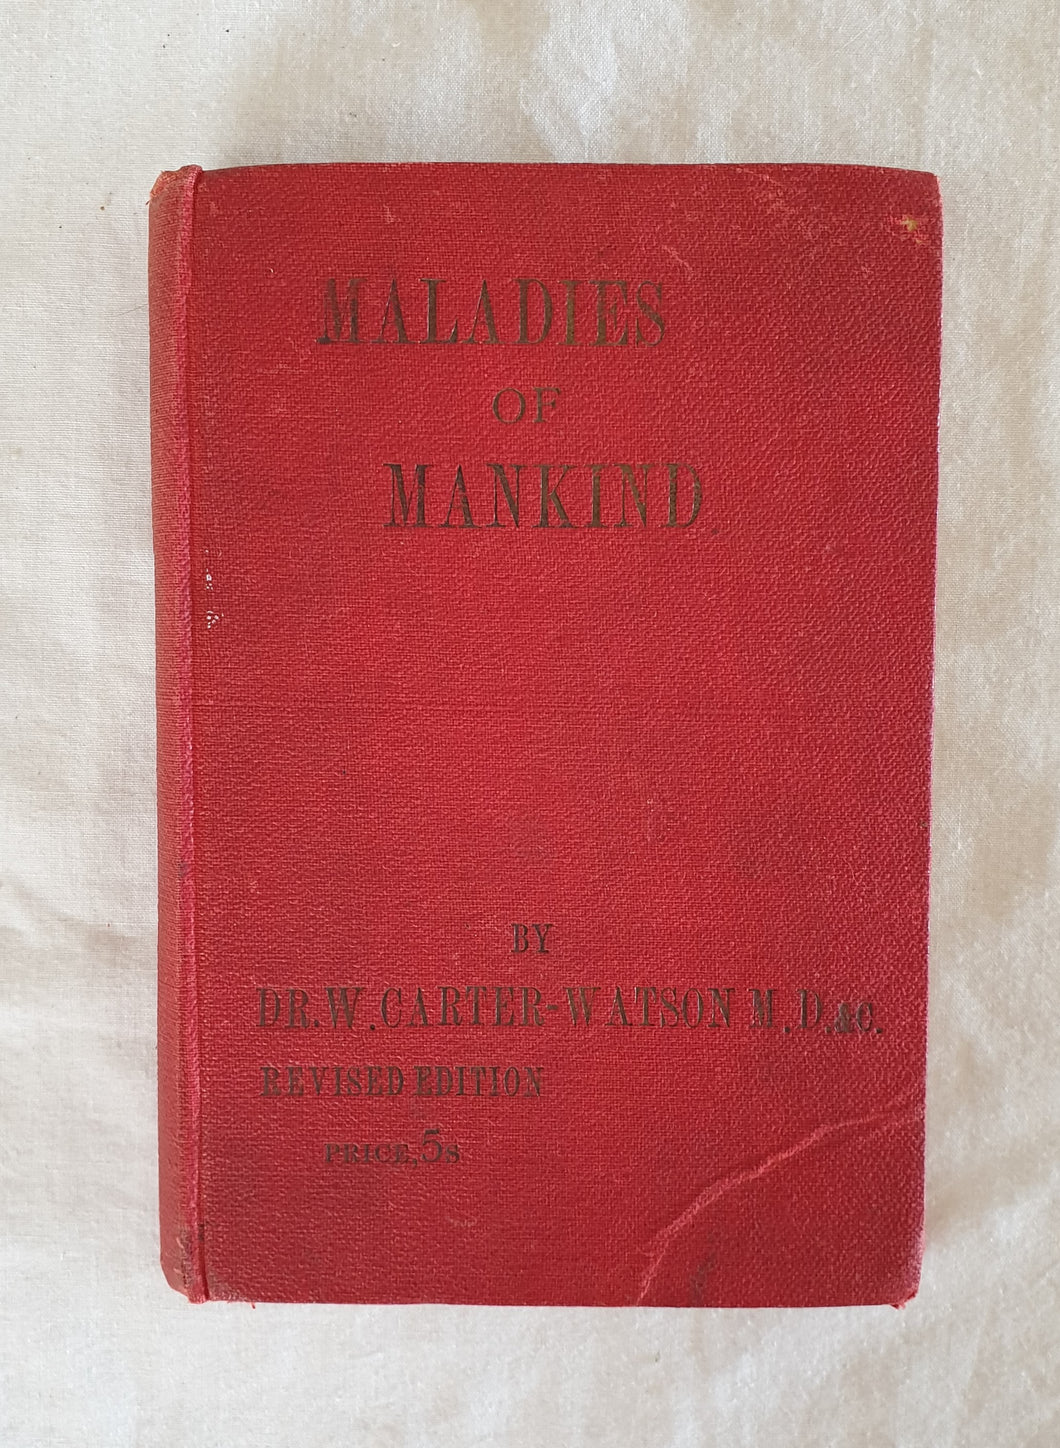 Maladies of Mankind by Dr. Walter Carter Watson